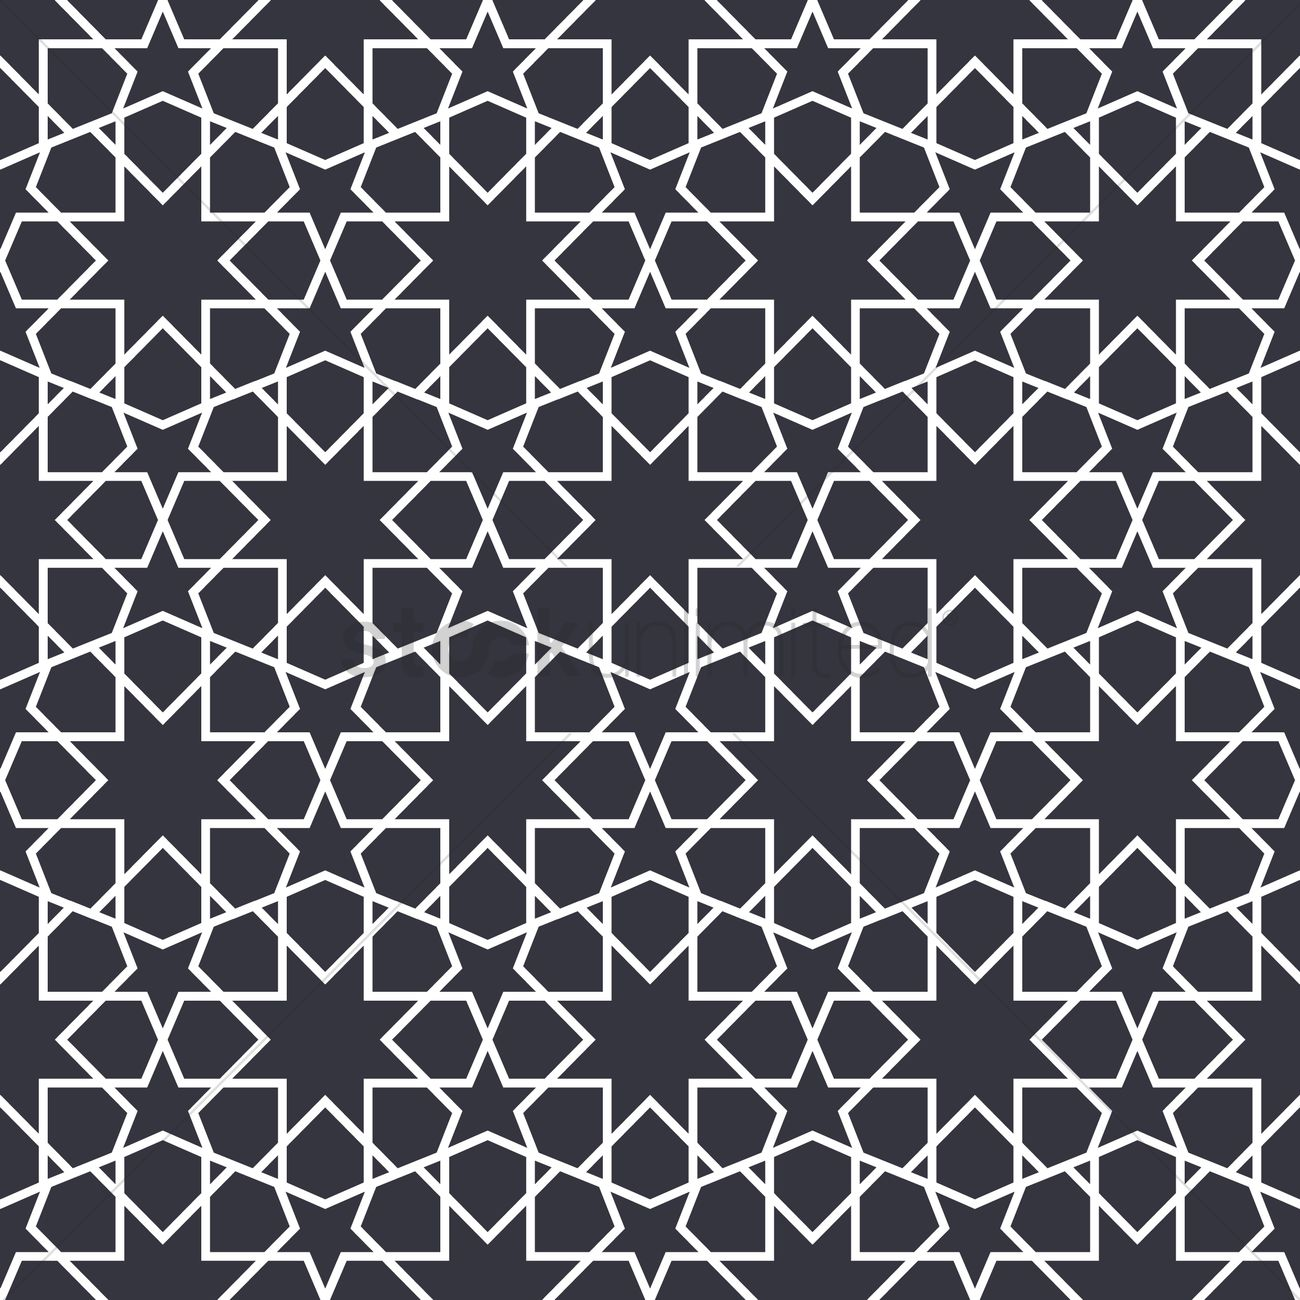 Islamic geometric pattern design Vector Image - 1979724 ...